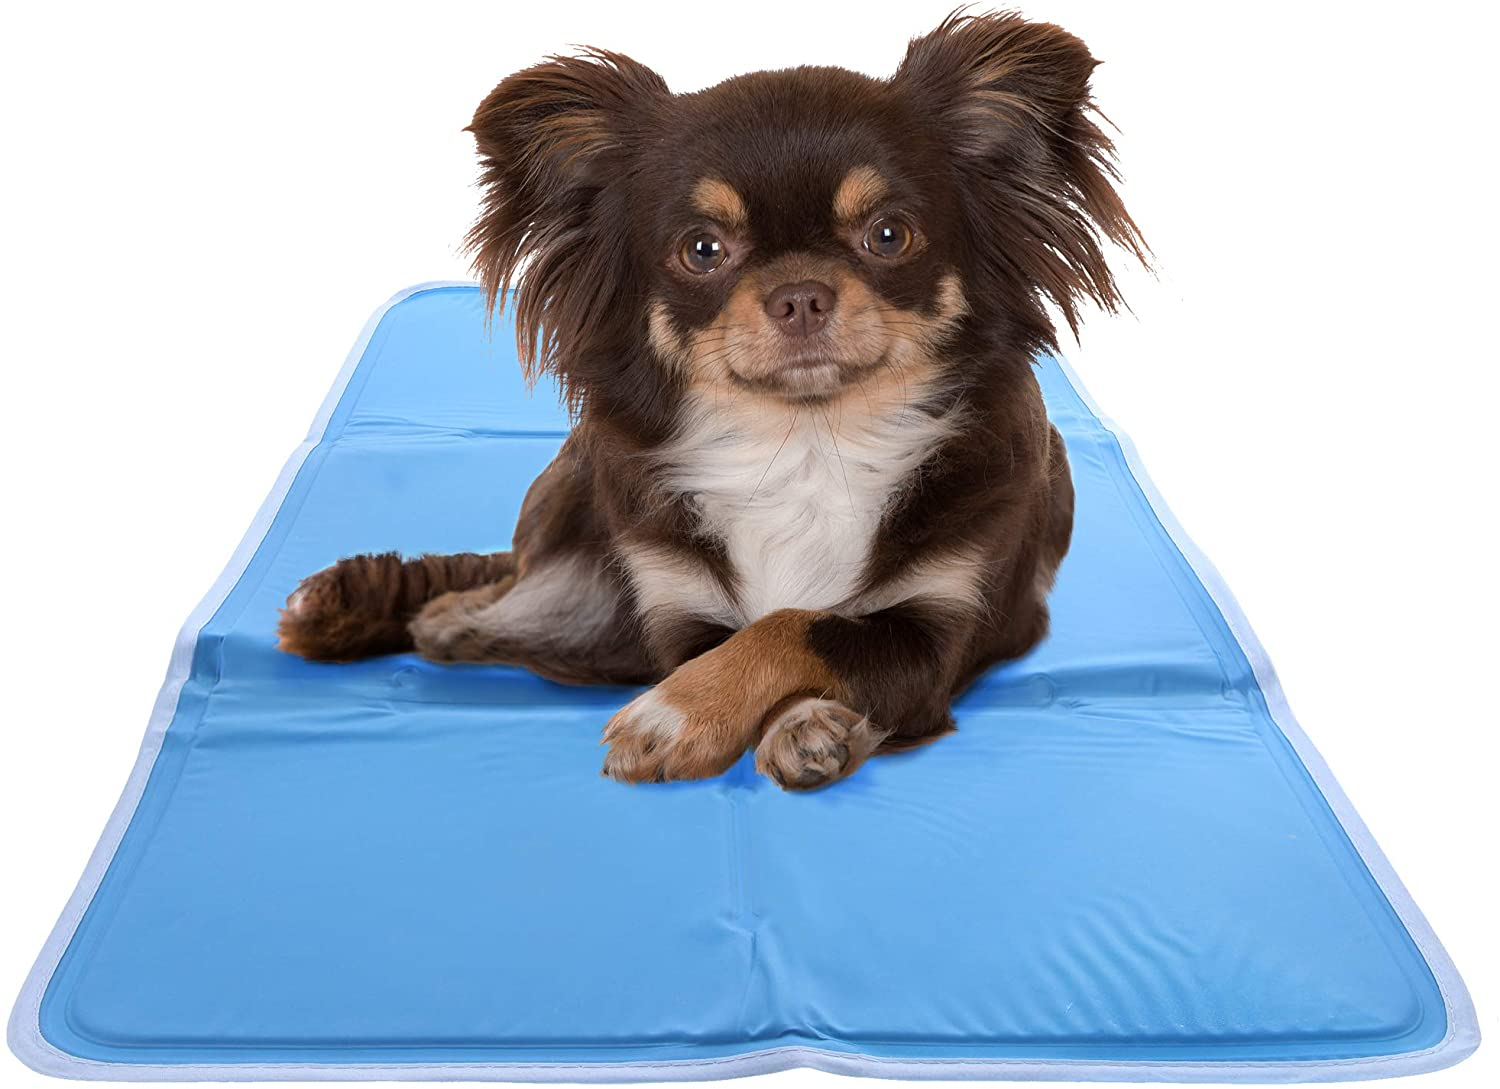 Tips to Make Dog Cooling Mat Last Longer